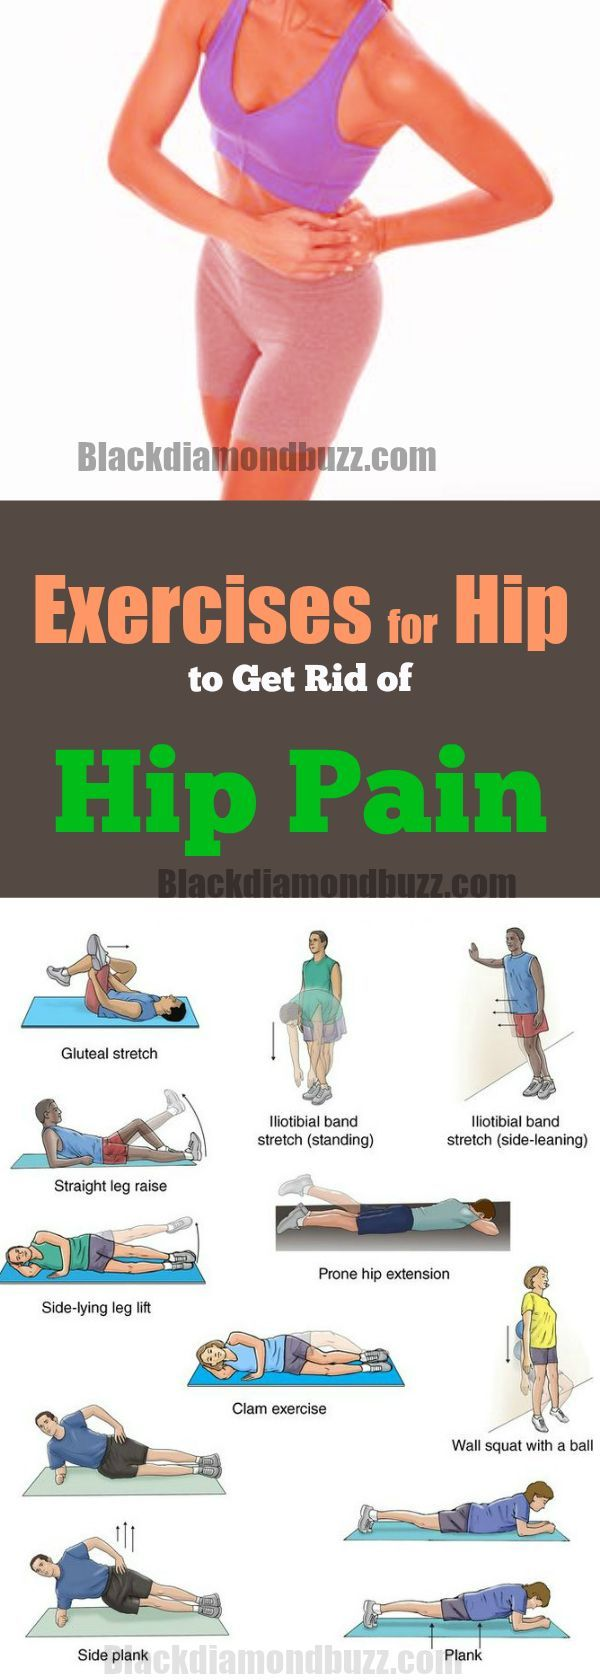 Exercises for Hip (Trochanteric bursitis) to Get Rid of Hip Pain | Hip Strengthening Exercises for Pain and Sciatic Nerve Relief |Thigh Workout  with Physical Therapy   #health #hippainrelief